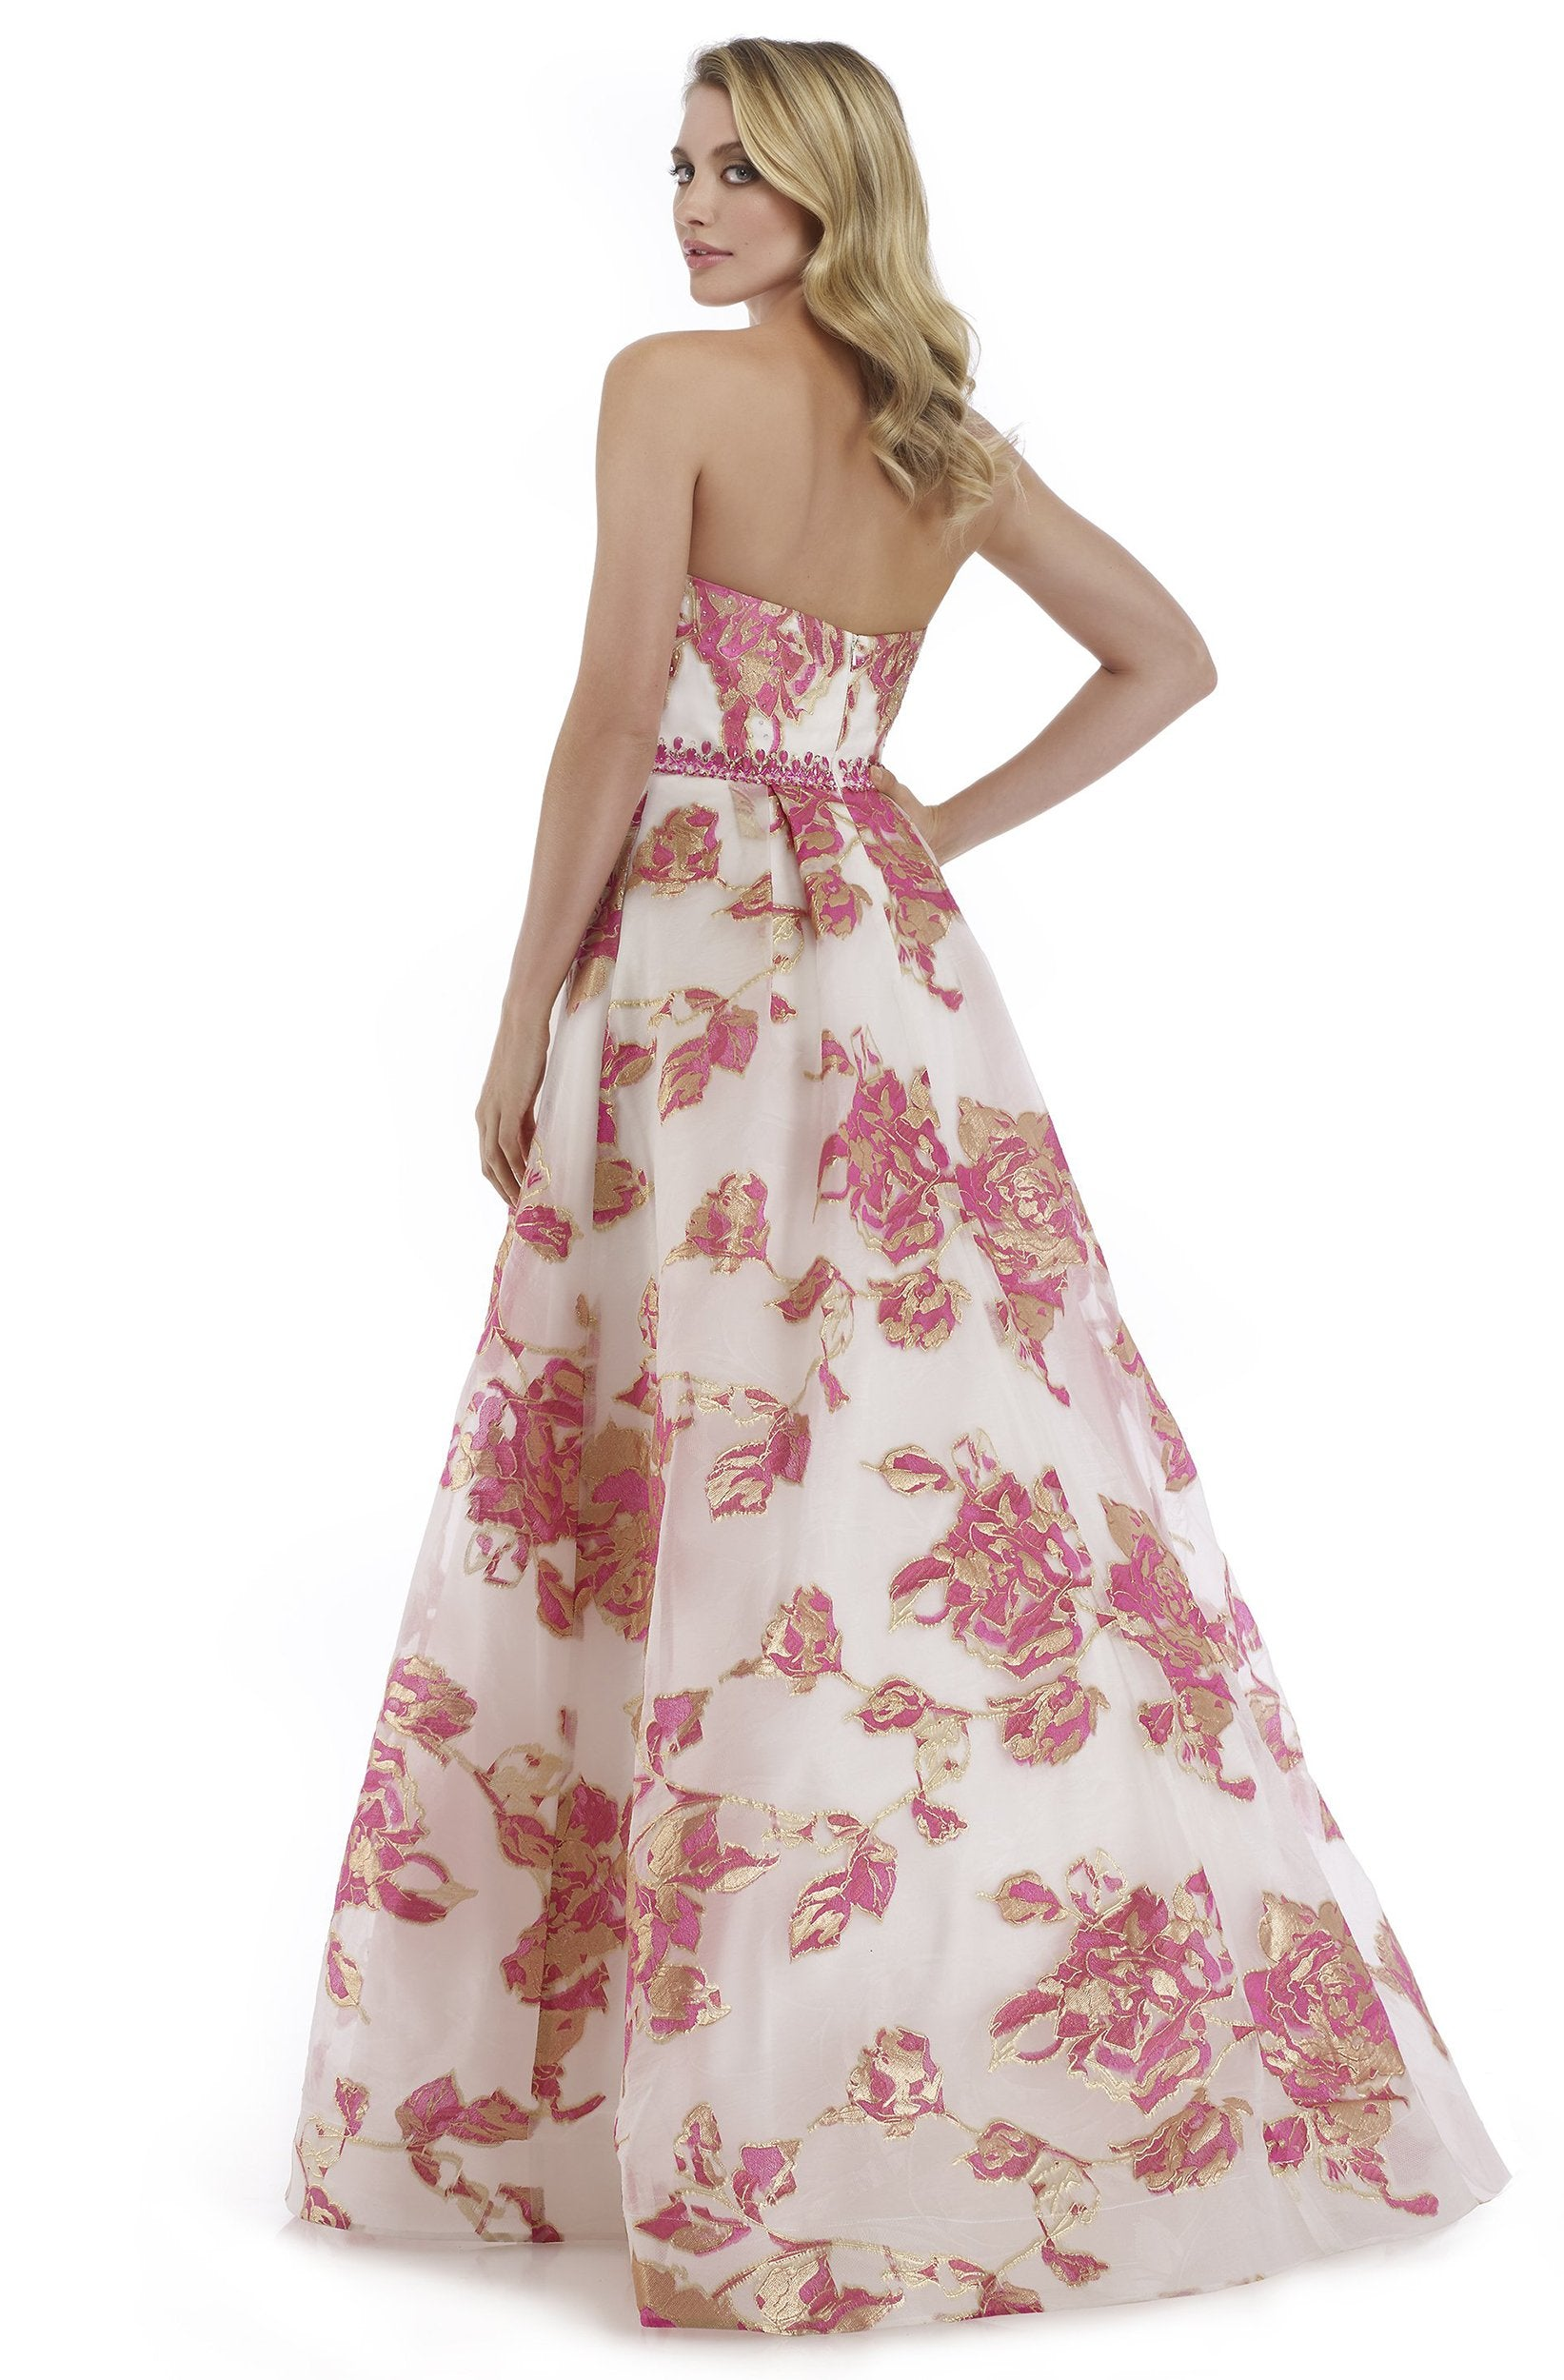 Morrell Maxie - 16049 Strapless Deep Sweetheart Brocade A-line Dress in Pink and Gold